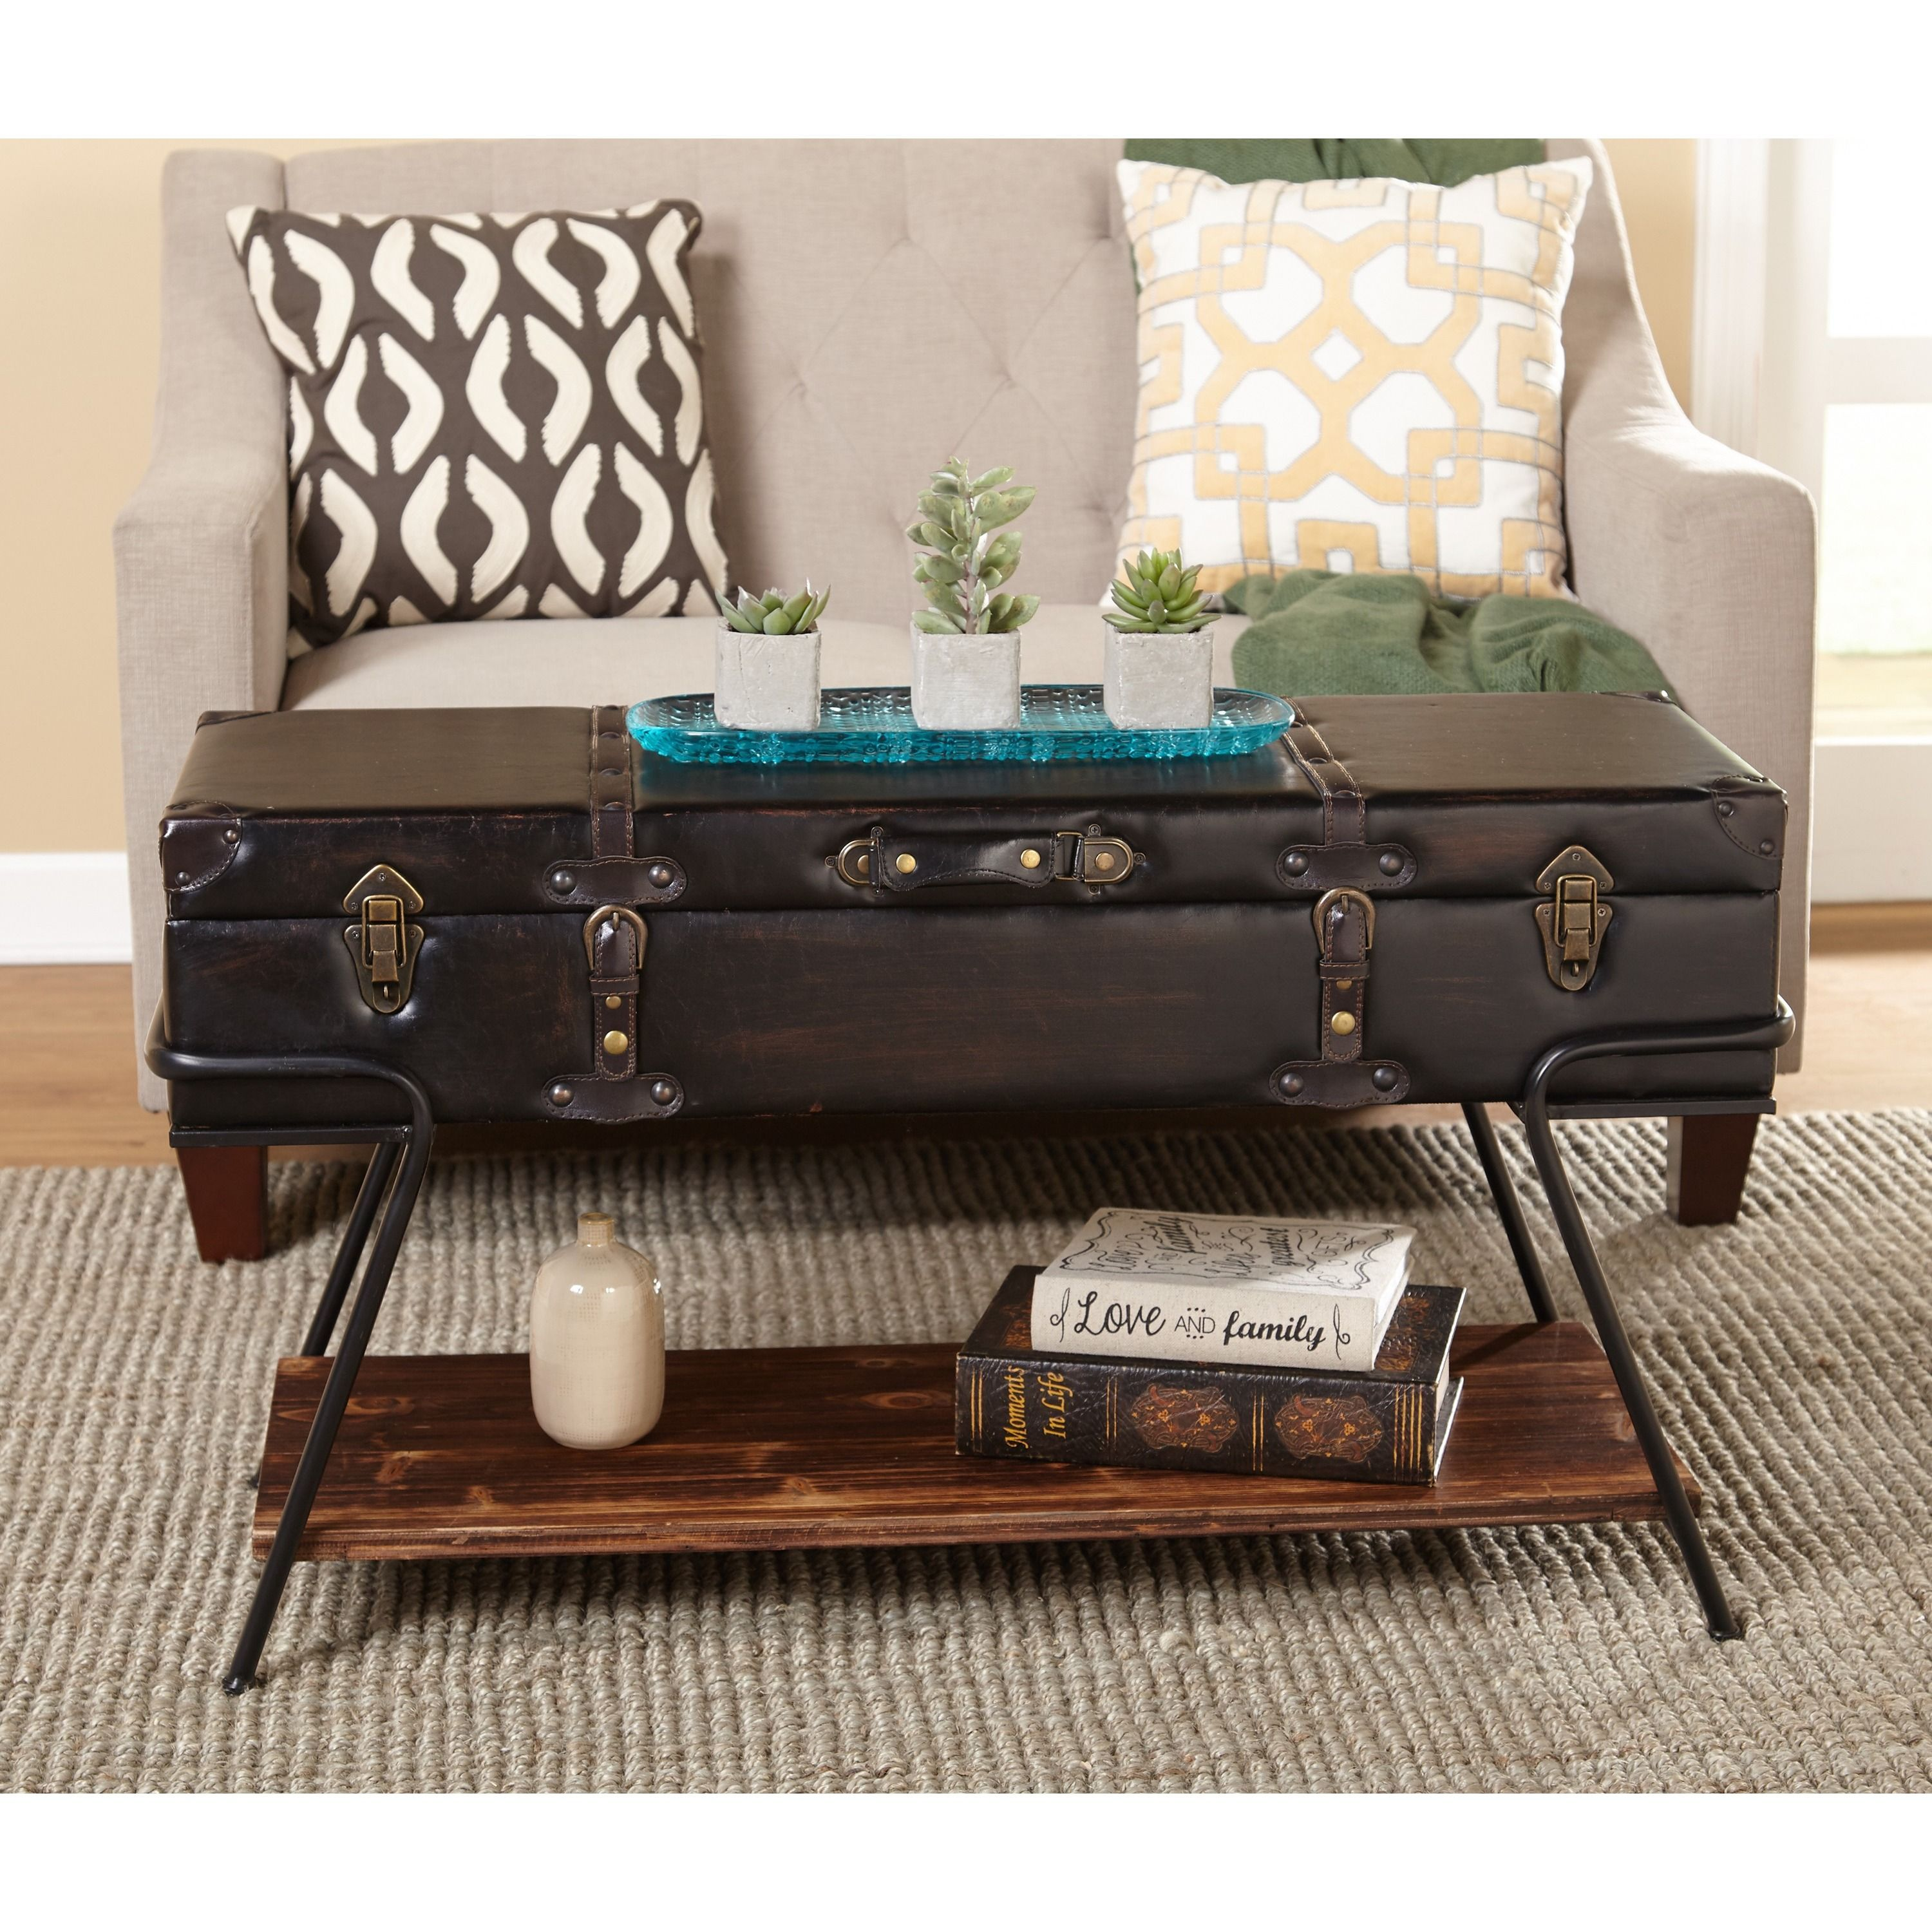 Simple Living Trunk Coffee Table Trunk coffee table Brown